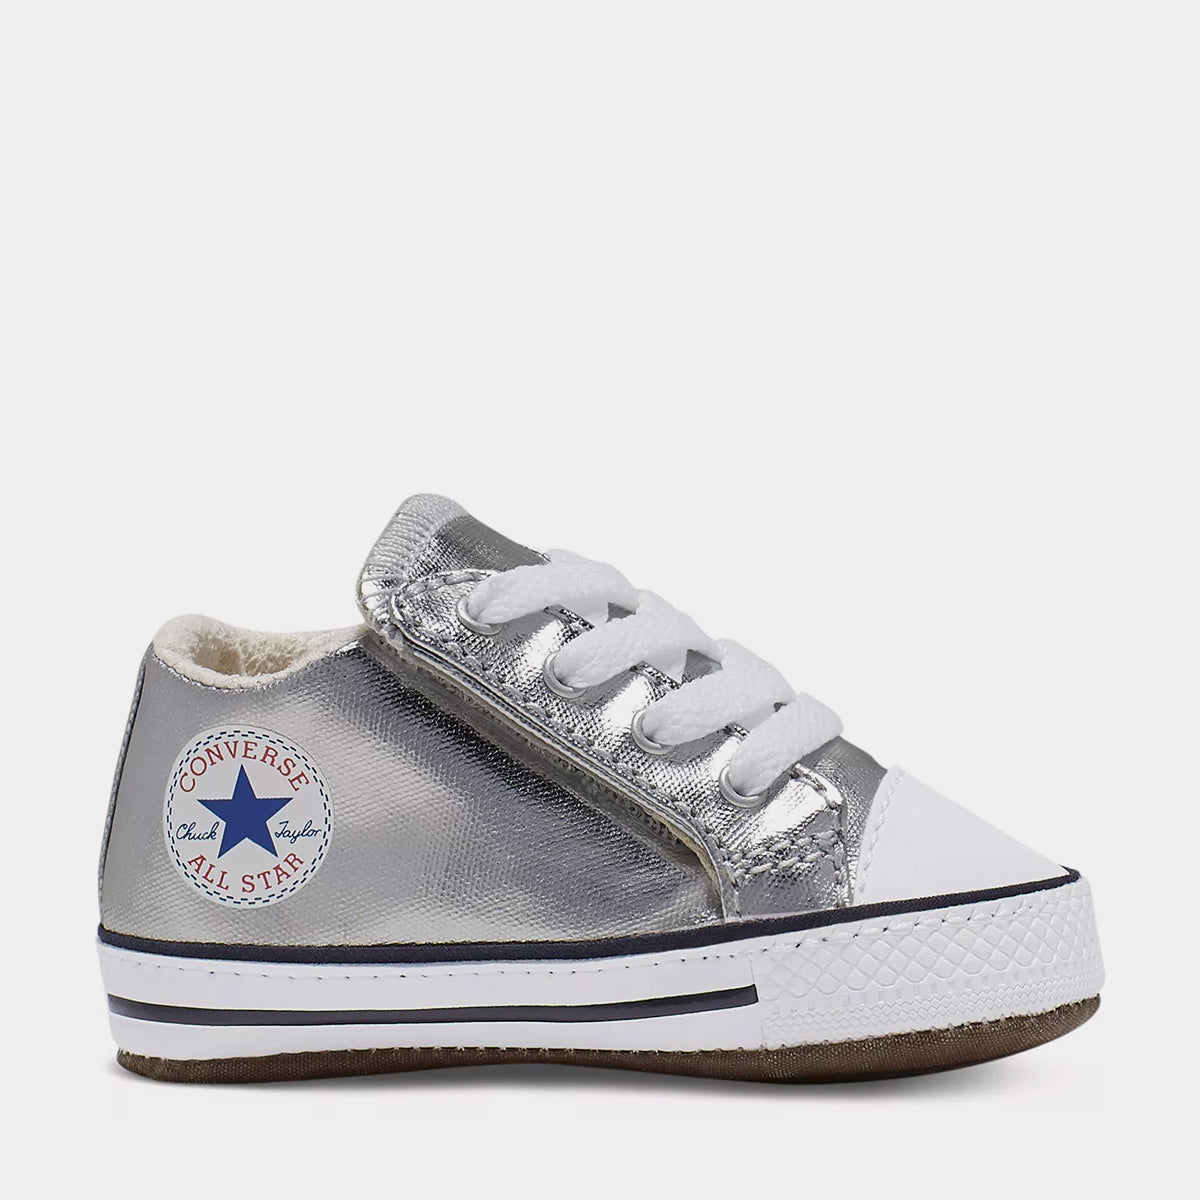 Infant Chuck Taylor All Star Cribster Mid - Metallic Granite